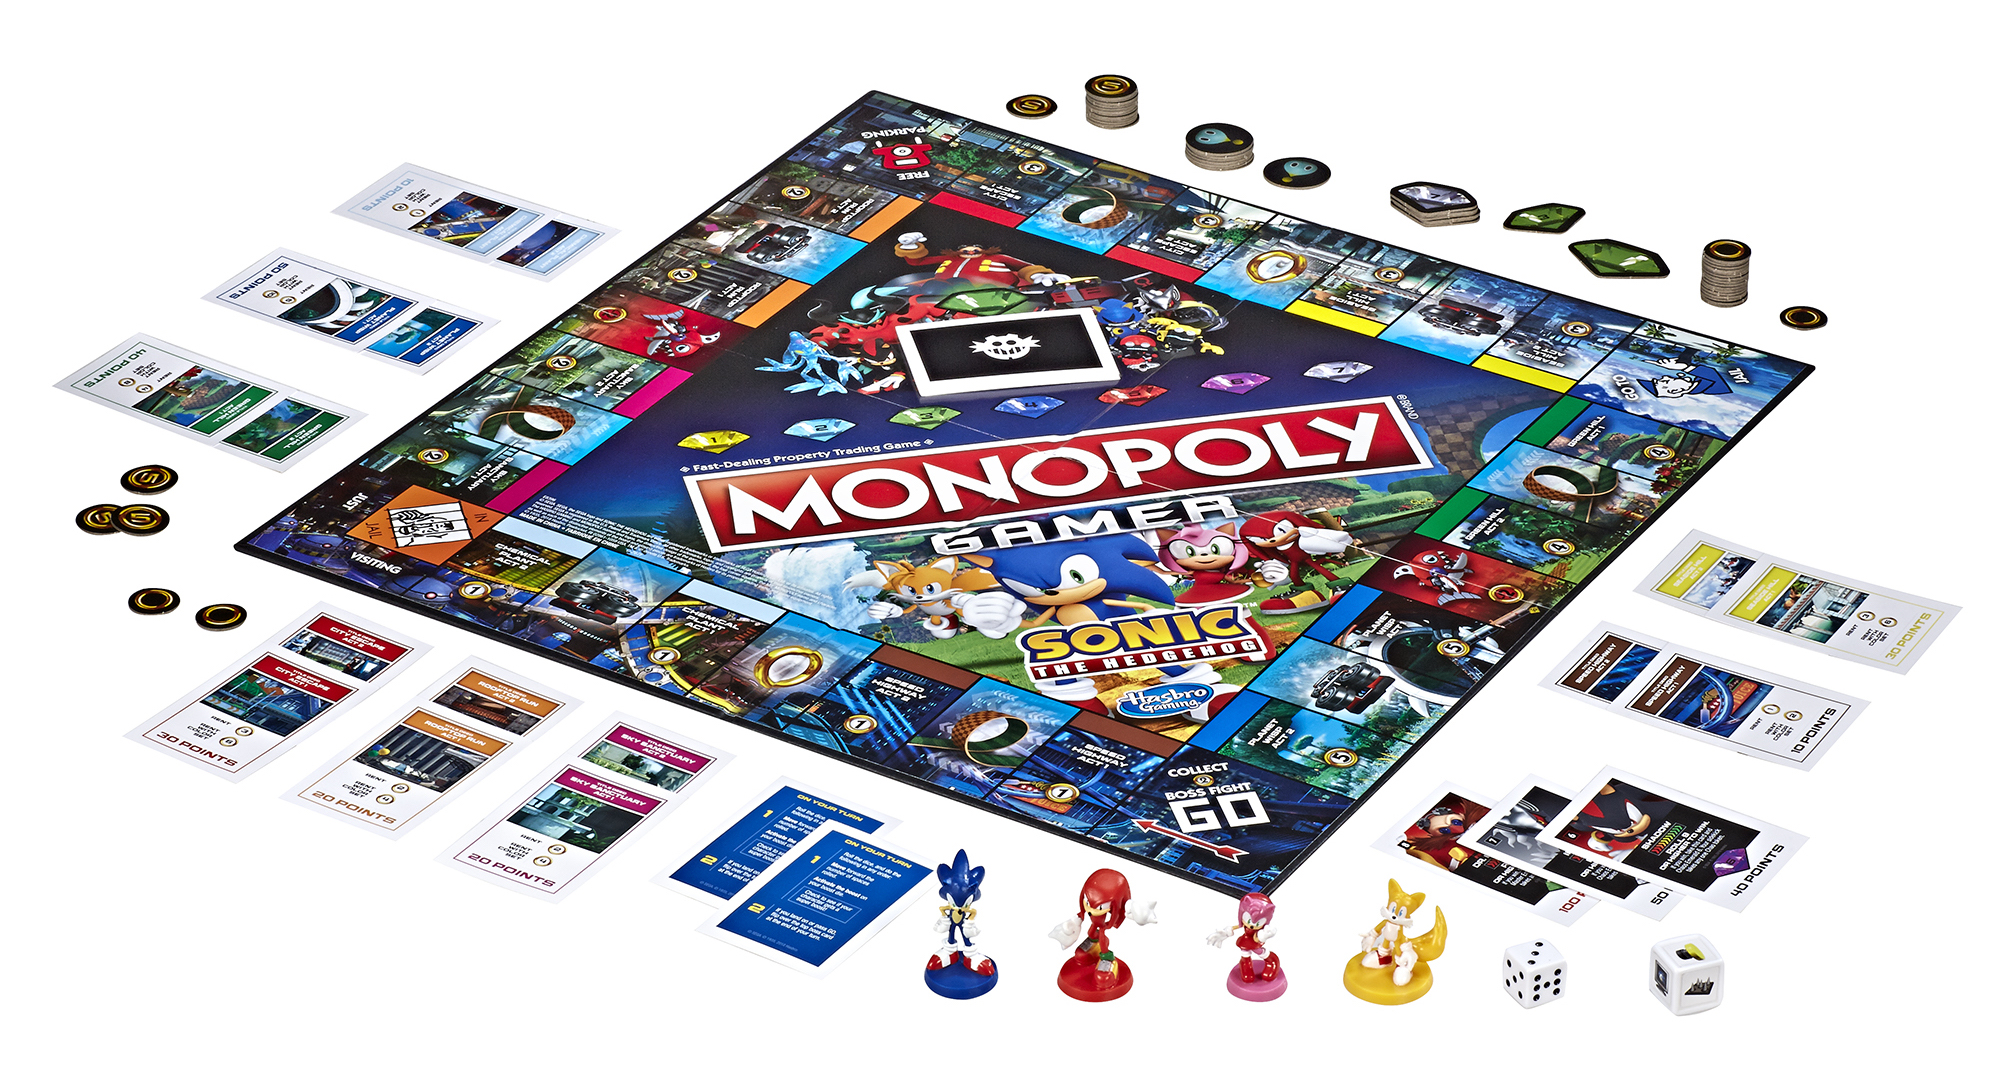 Sonic the Hedgehog Monopoly unveiled